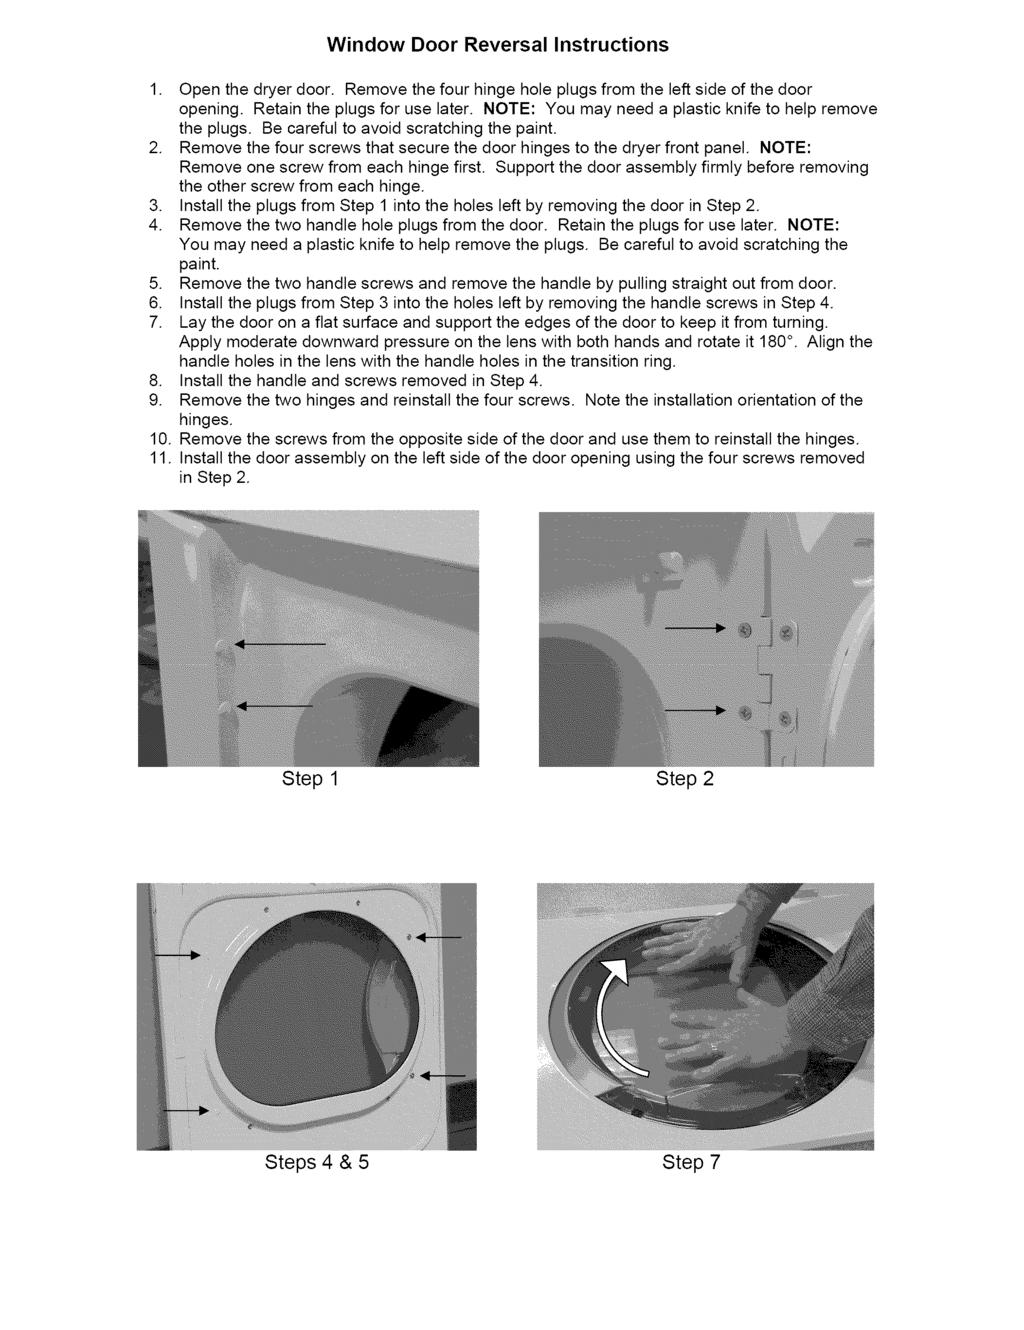 Window Door Reversal Instructions 1. Open the dryer door. Remove the four hinge hole plugs from the left side of the door opening. Retain the plugs for use later.